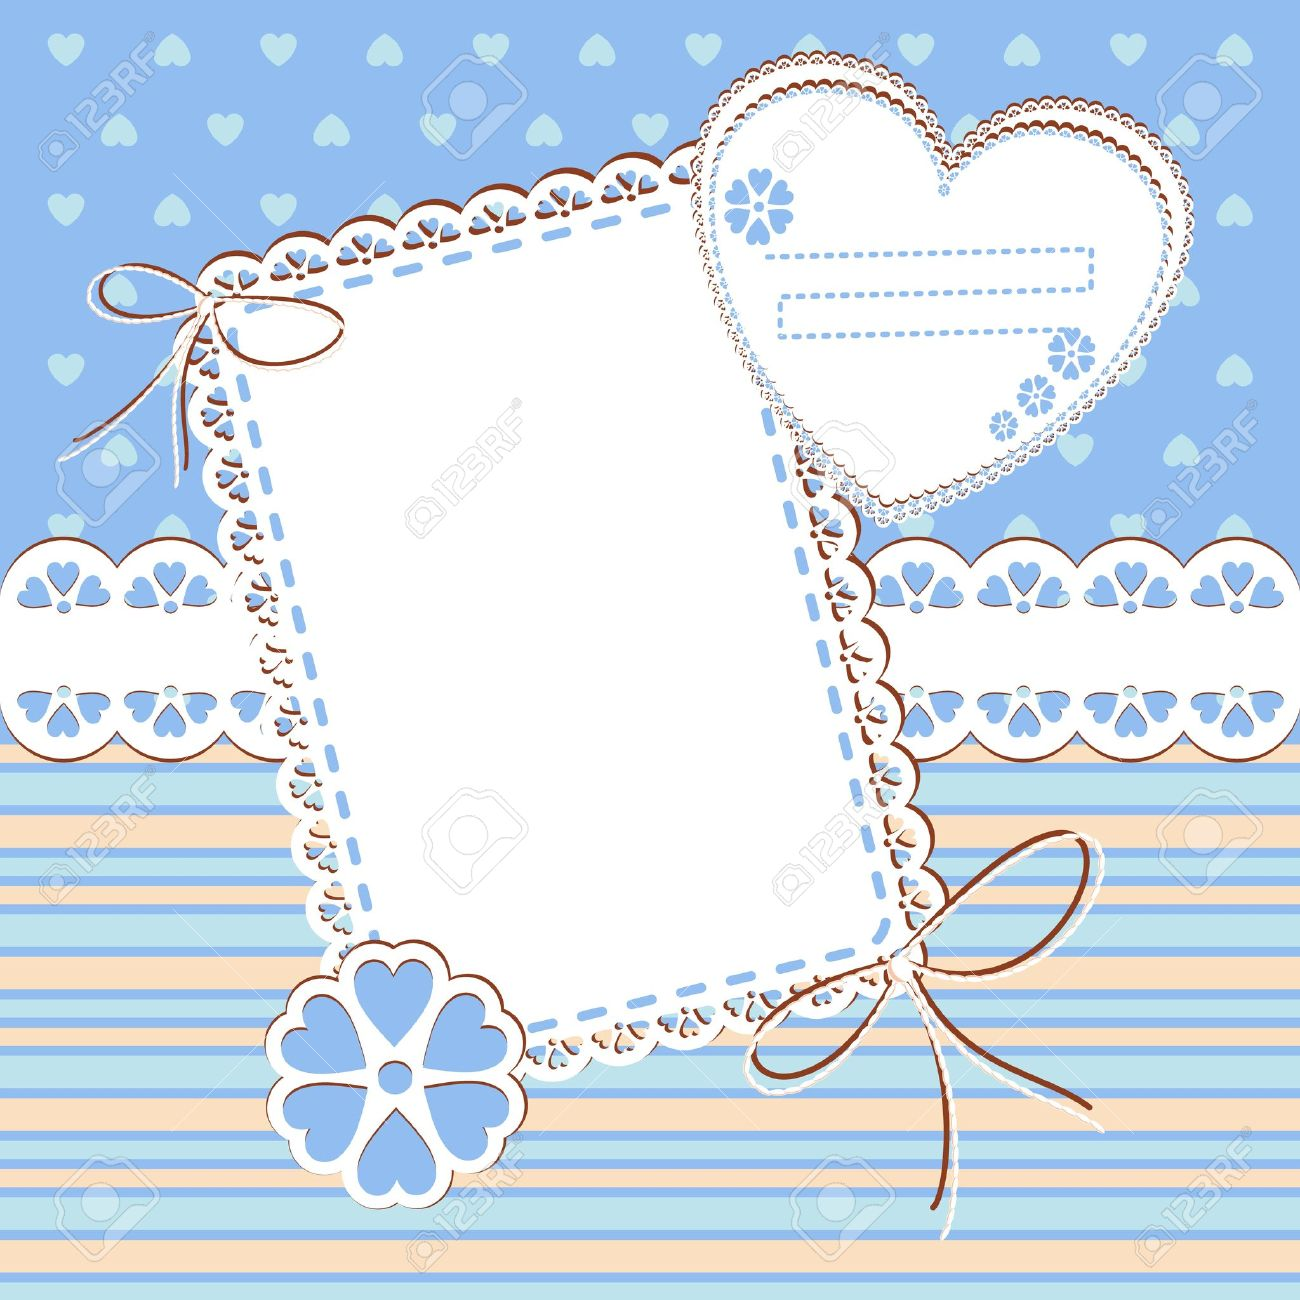 Picture Frames For Babies - Page 2 - Frame Design & Reviews ✓